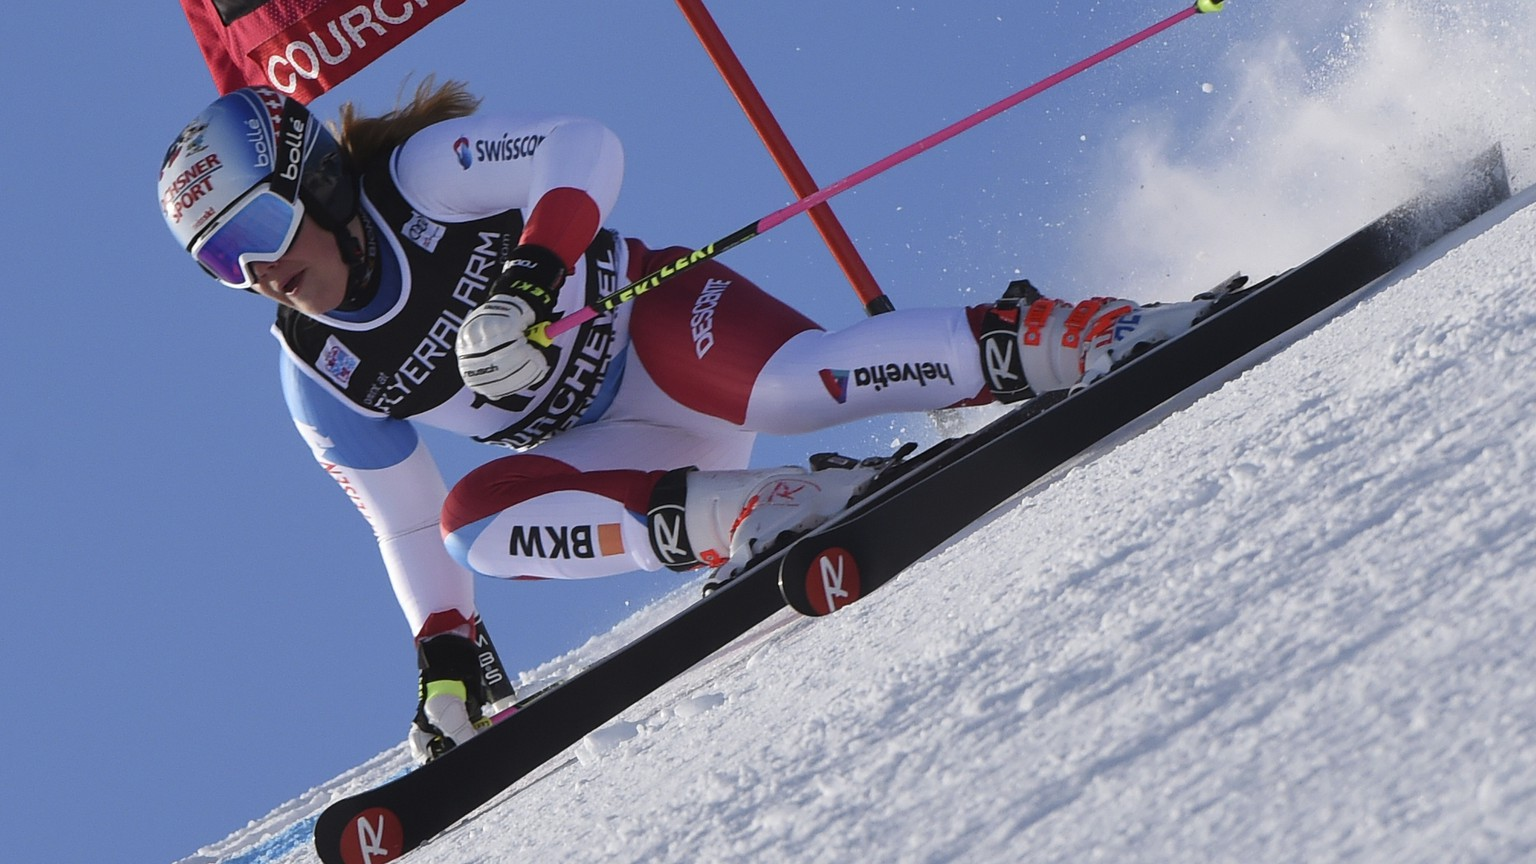 Switzerland's Melanie Meillard competes during an alpine ski, women's World Cup giant slalom in Courchevel, France, Tuesday, Dec. 19, 2017. (AP Photo/Marco Tacca)